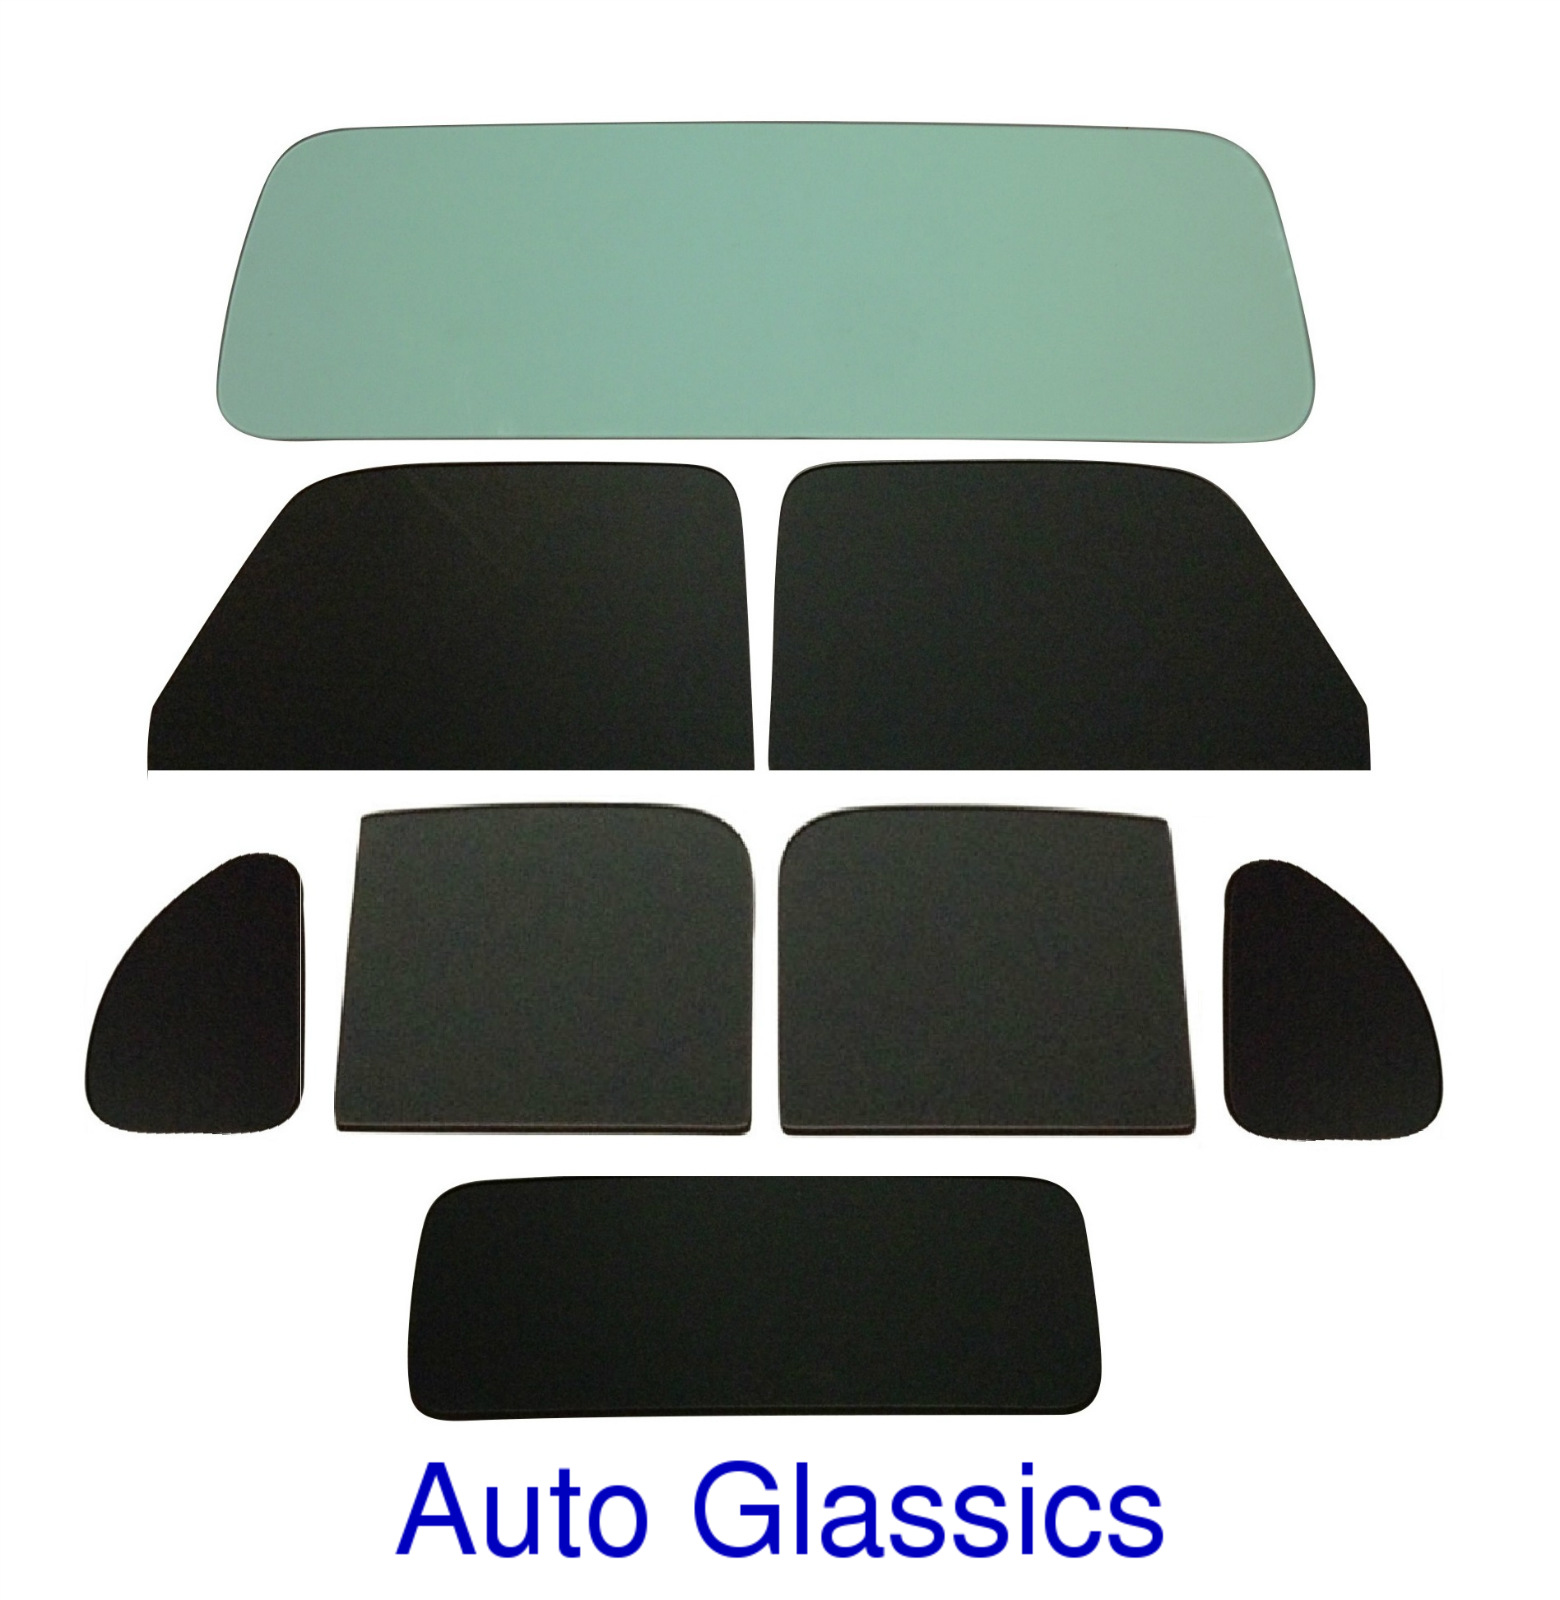 1935 Ford Fordor 4 Door Sedan Auto Glass Kit NEW C